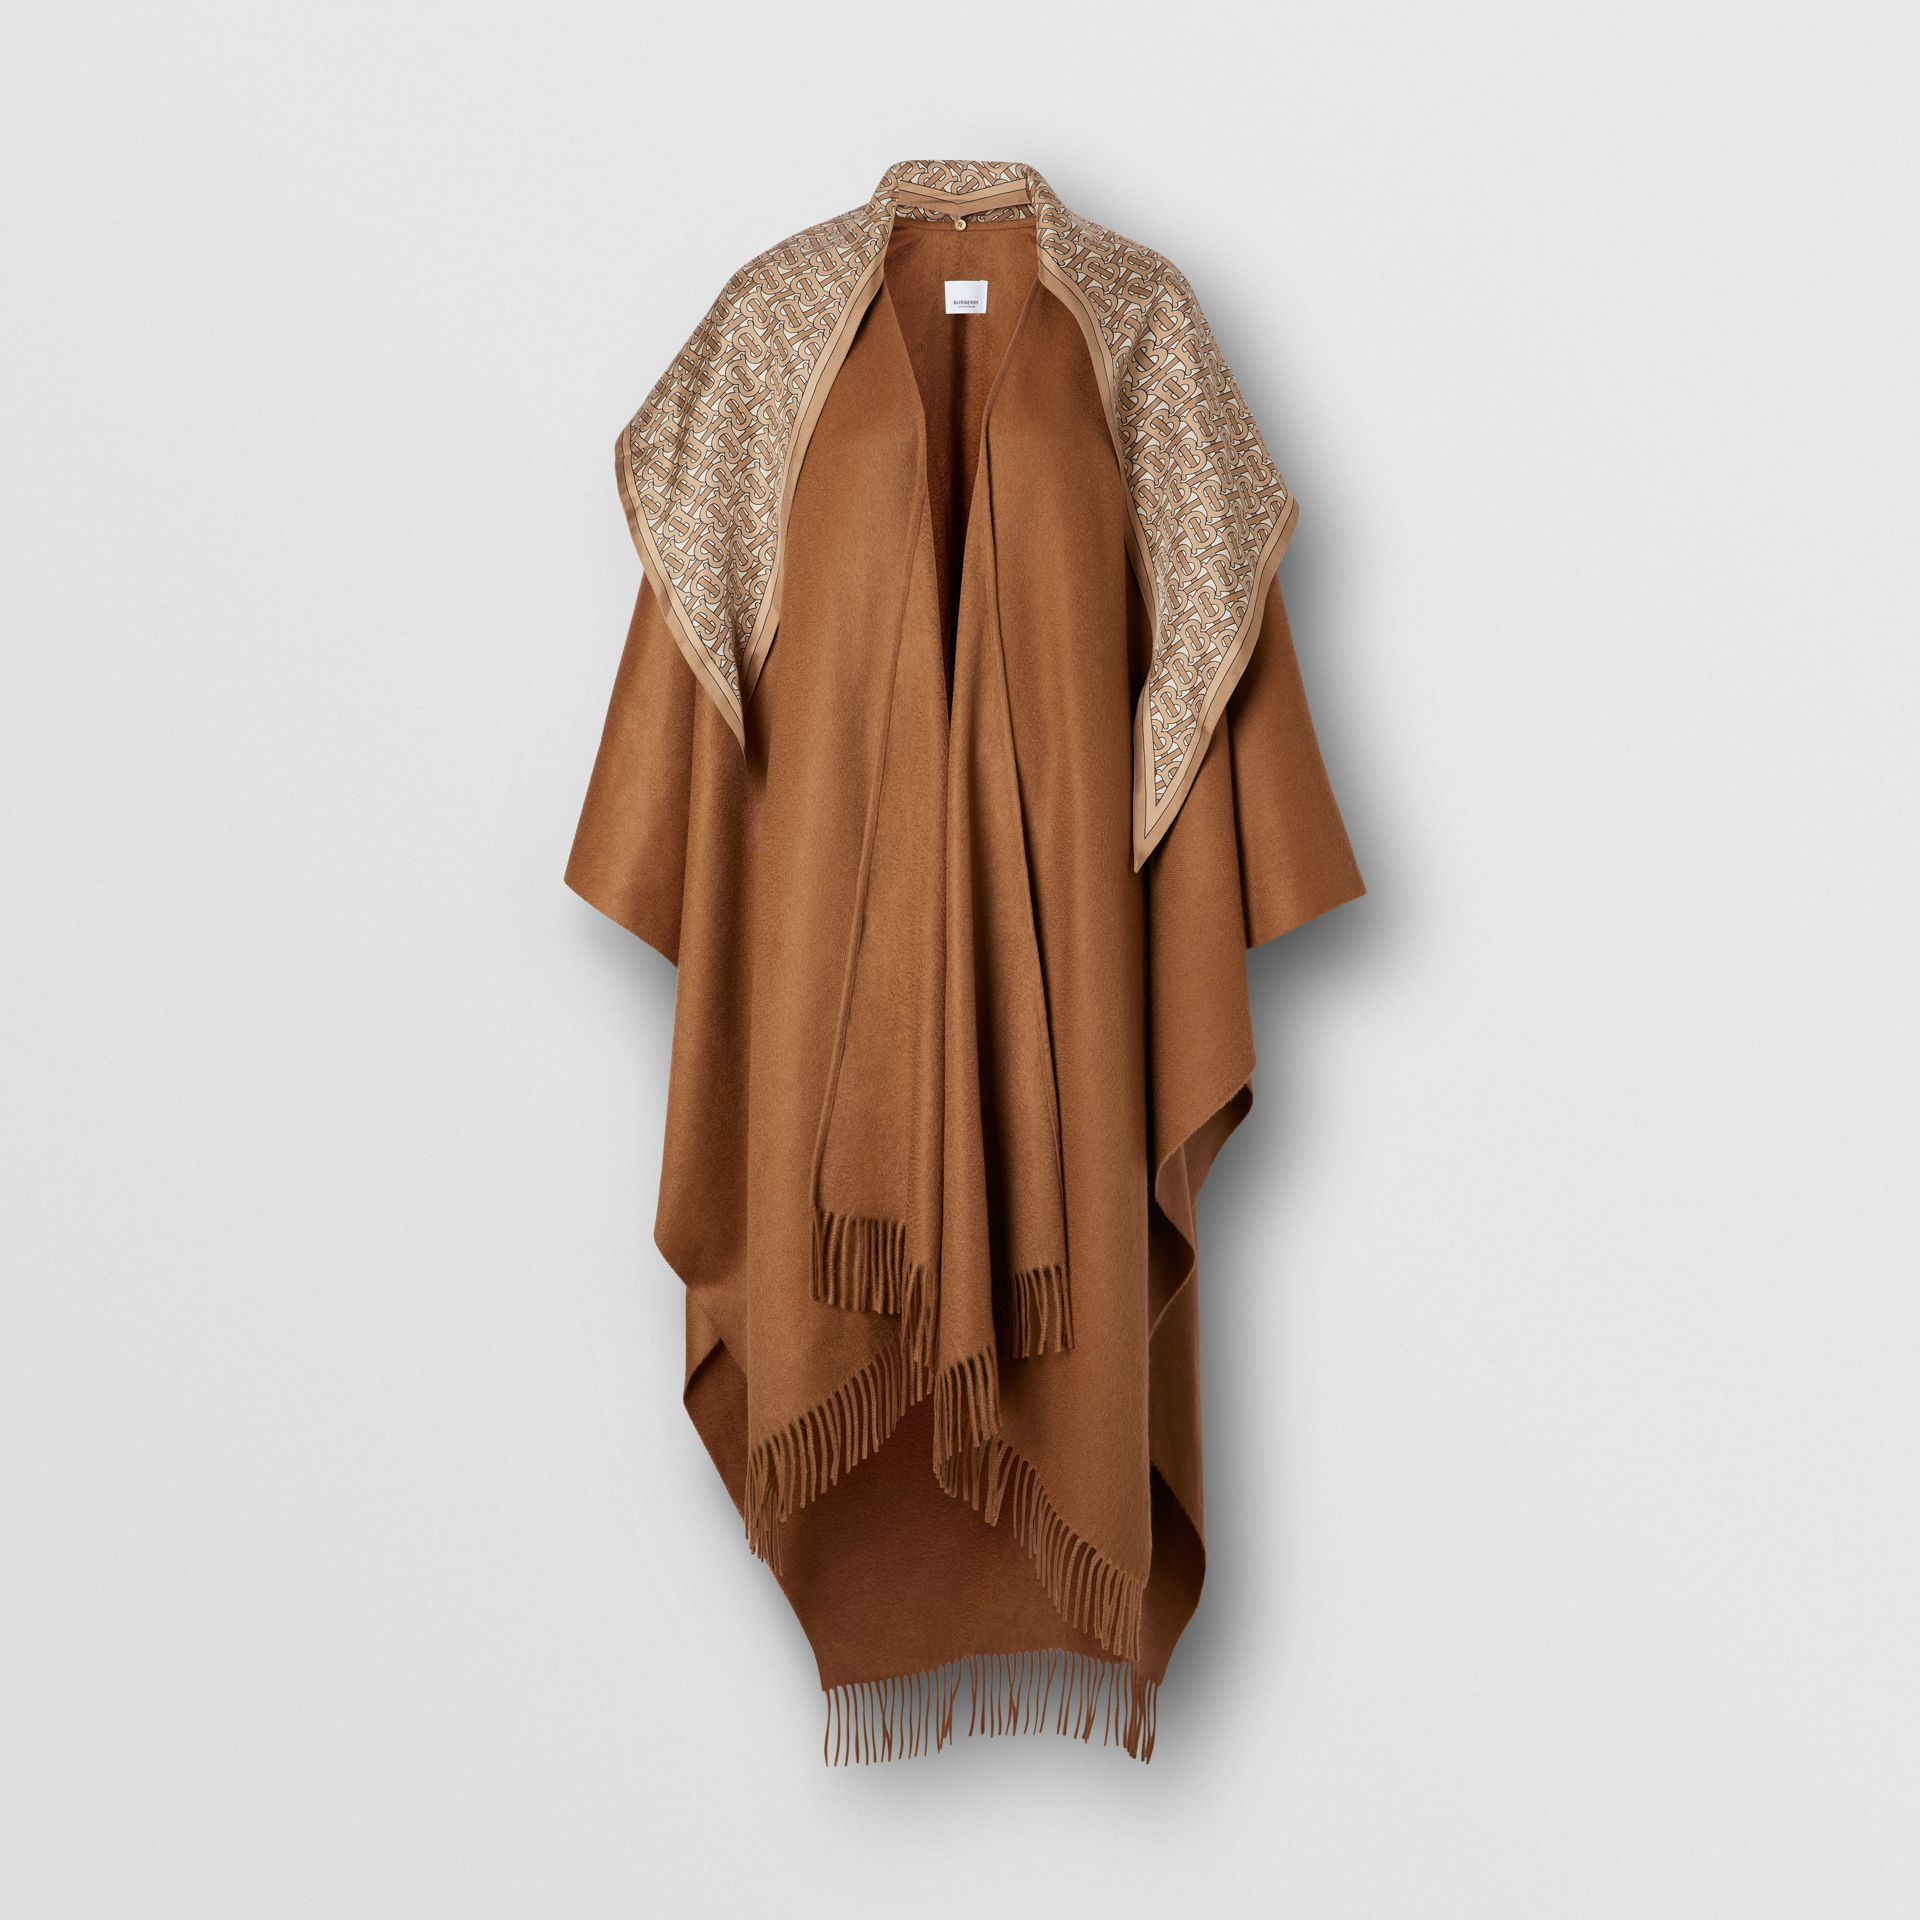 Detachable Monogram Print Scarf Cashmere Cape in Fern - Women | Burberry Canada - gallery image 3